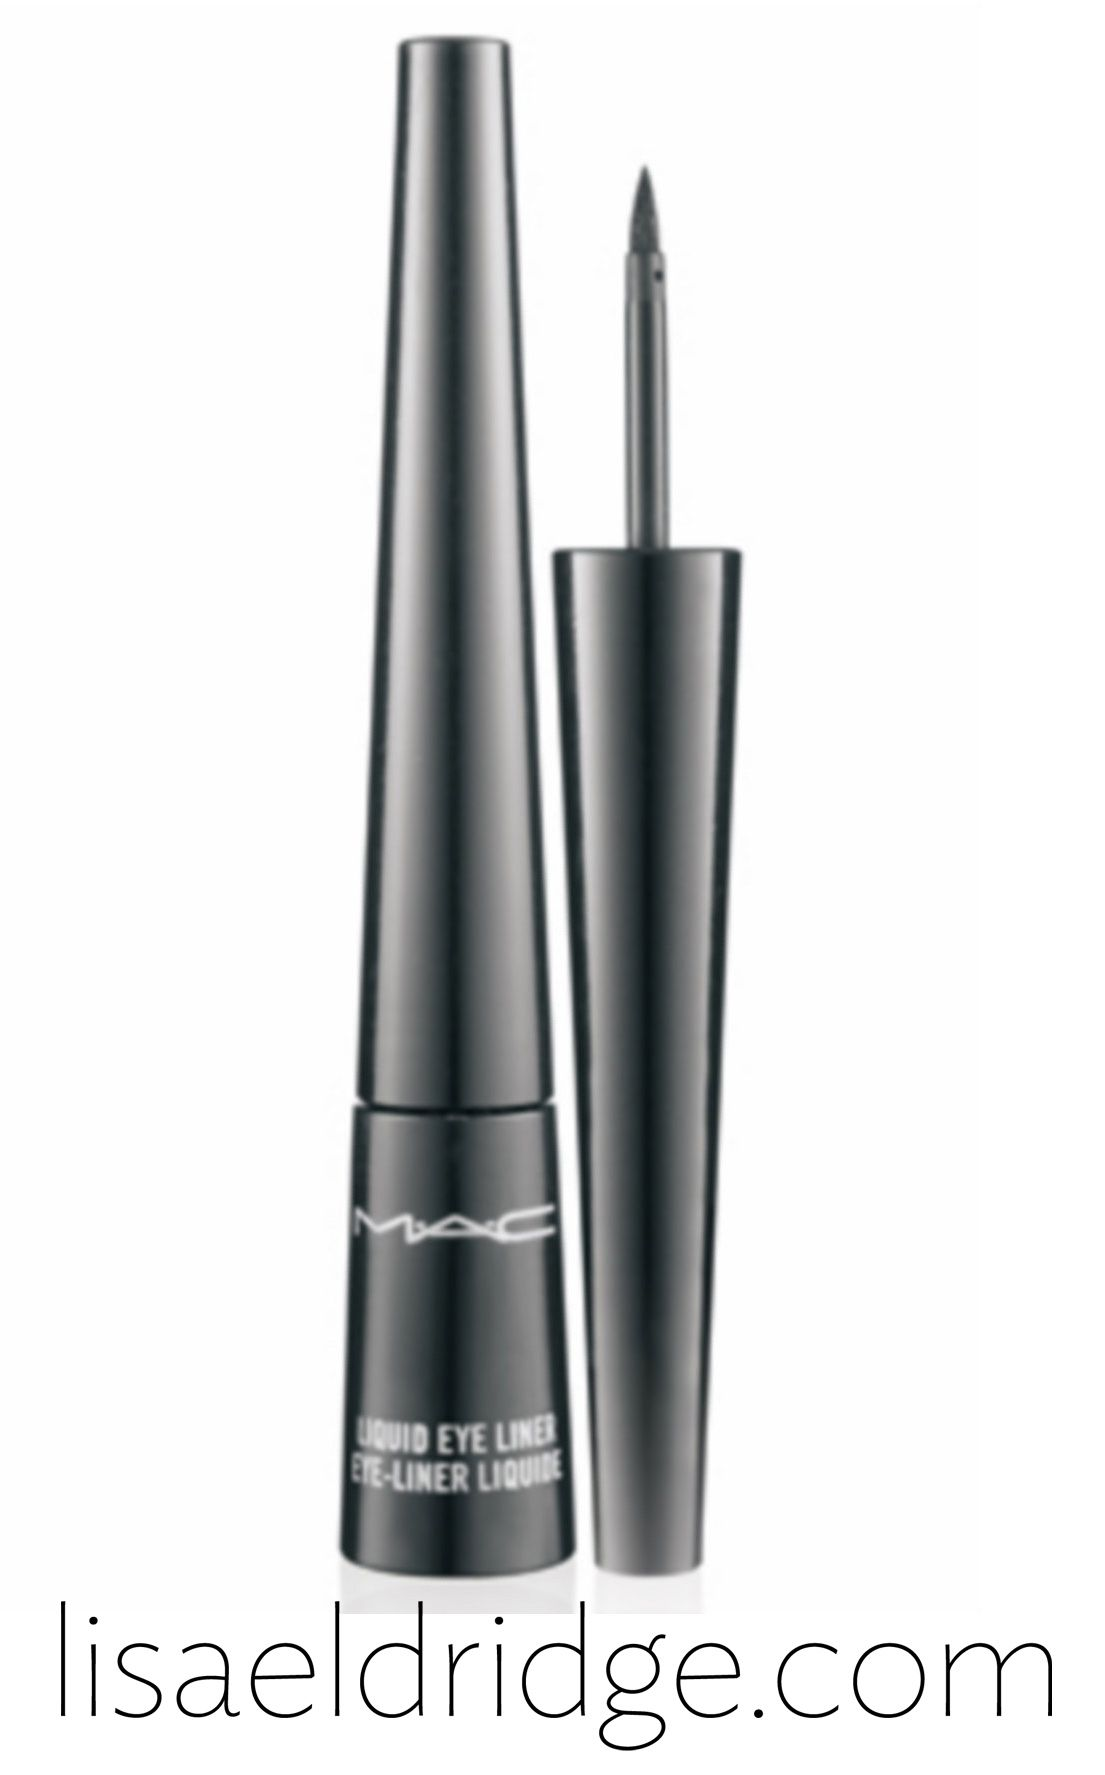 Avon mark get in line eyeliner hook up waterproof painted black